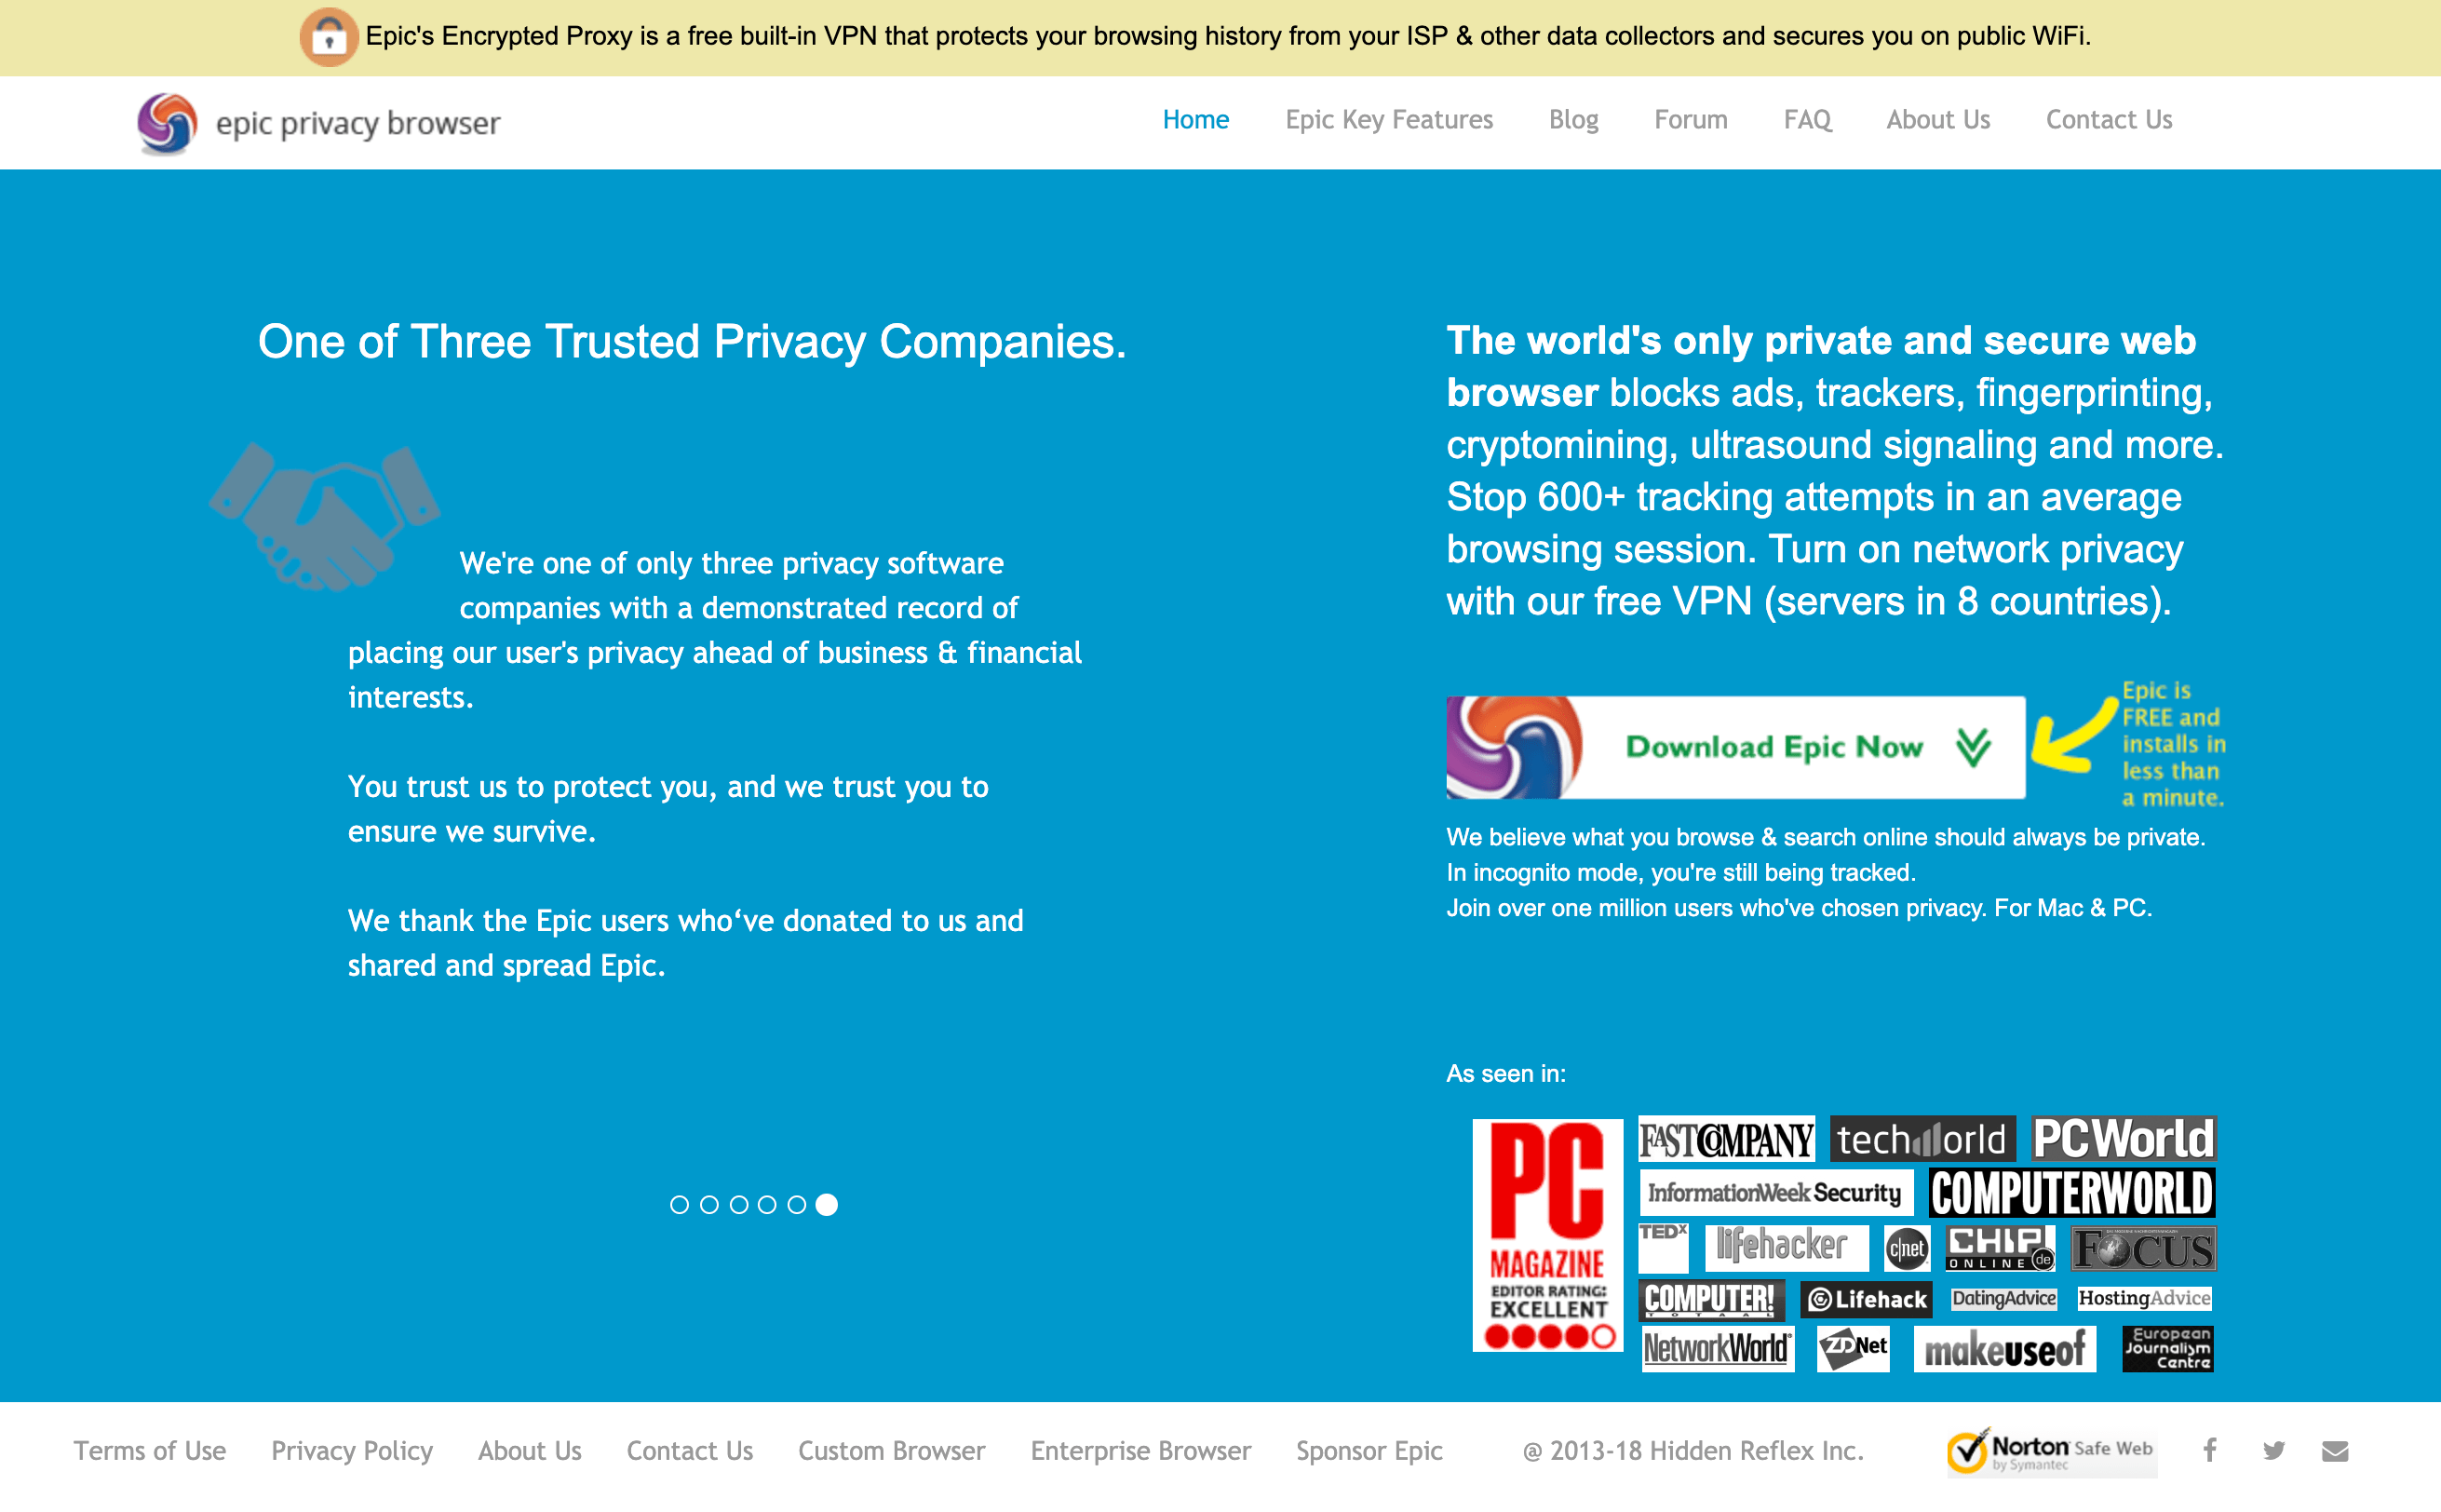 Epic privacy browser homepage